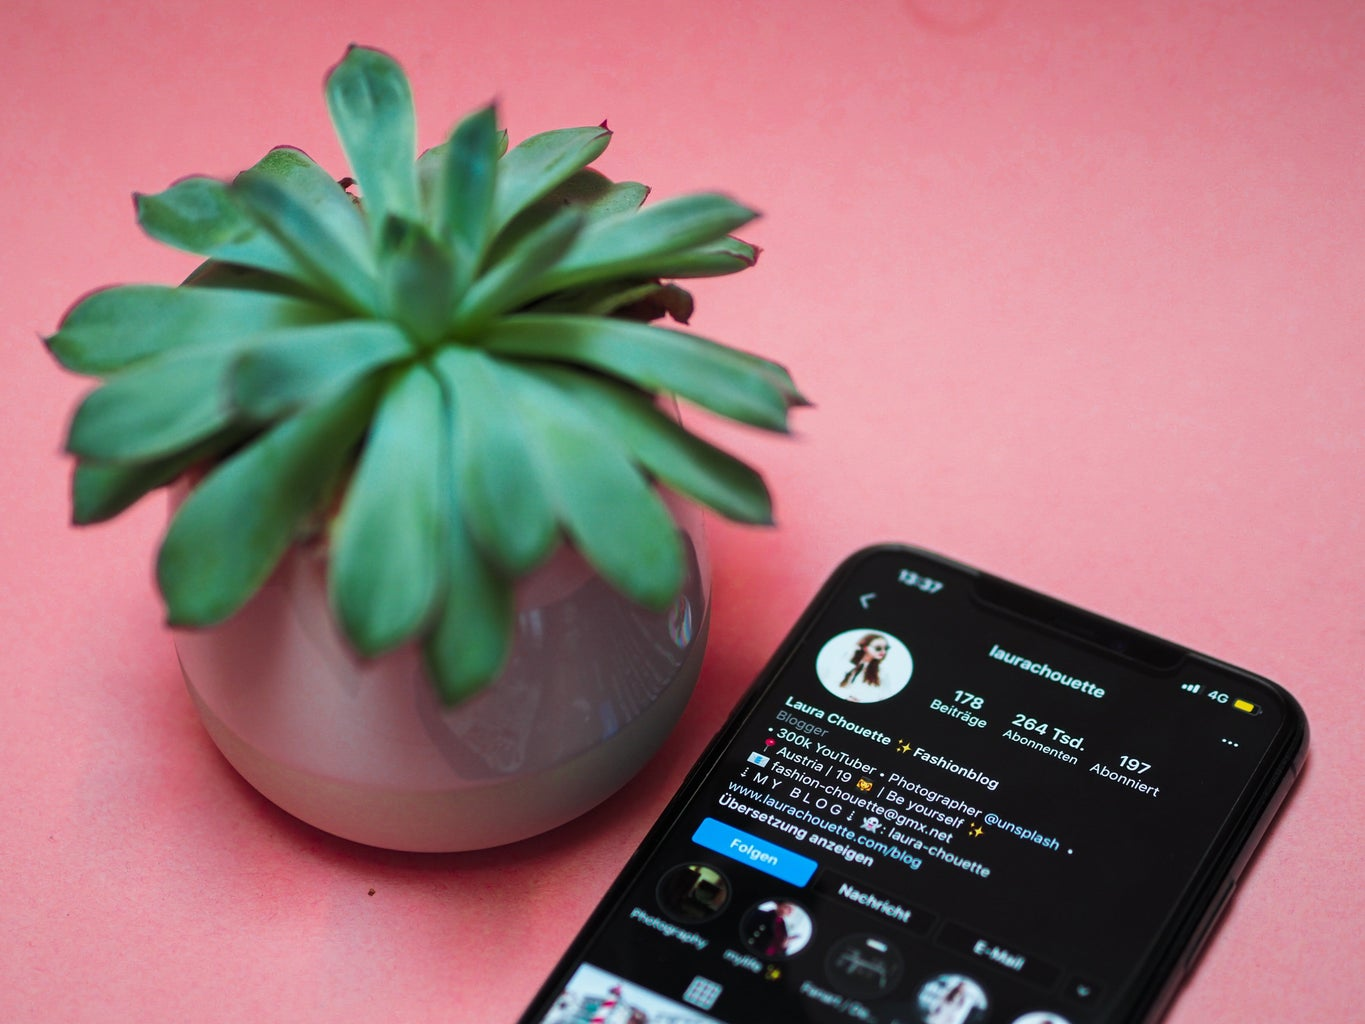 An iphone (in the screen you can see the app of instagram open) next to a plant